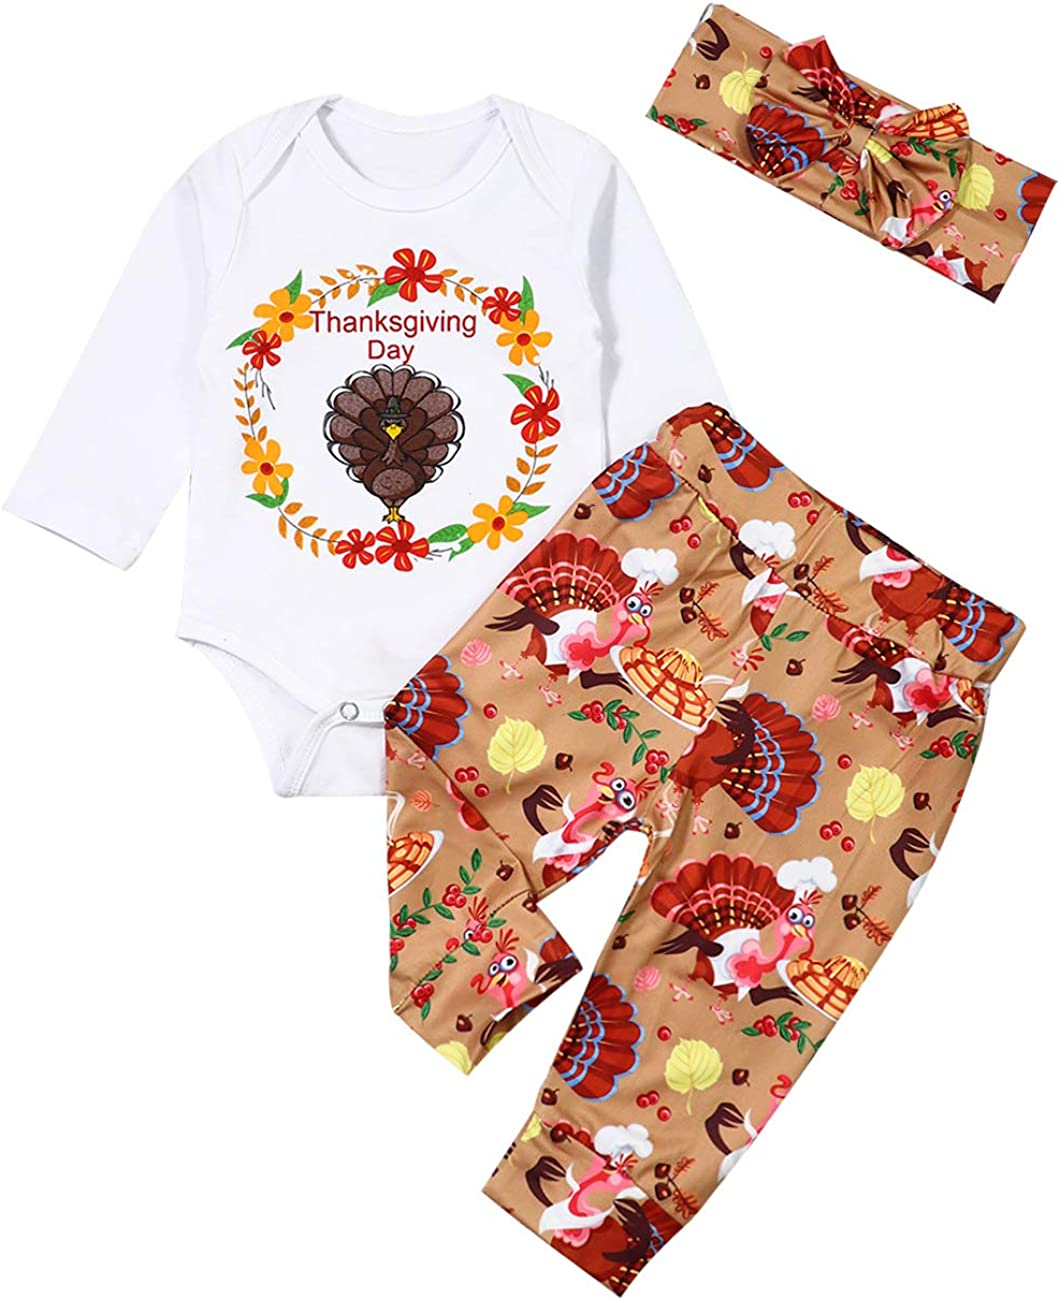 Tesa Babe Baby Thanksgiving Day Outfit My First Thanksgiving Bodysuits Rompers Jumpsuit for Baby Girls and Boys